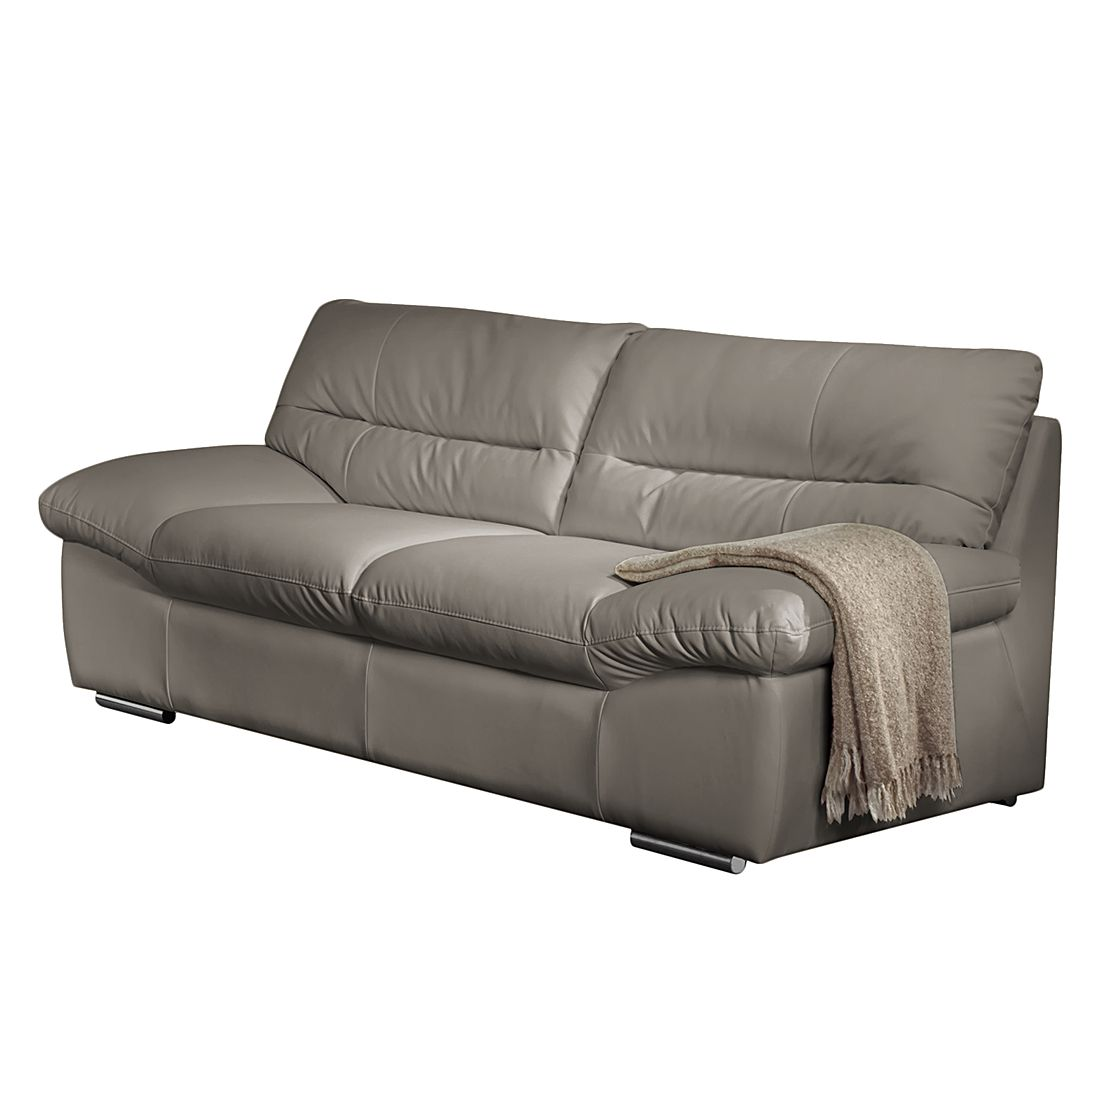 2 sitzer couch can 2 seater sofa by hay in our interior design shop 0832 sofa 2 sitzer wei m Design sofa kaufen